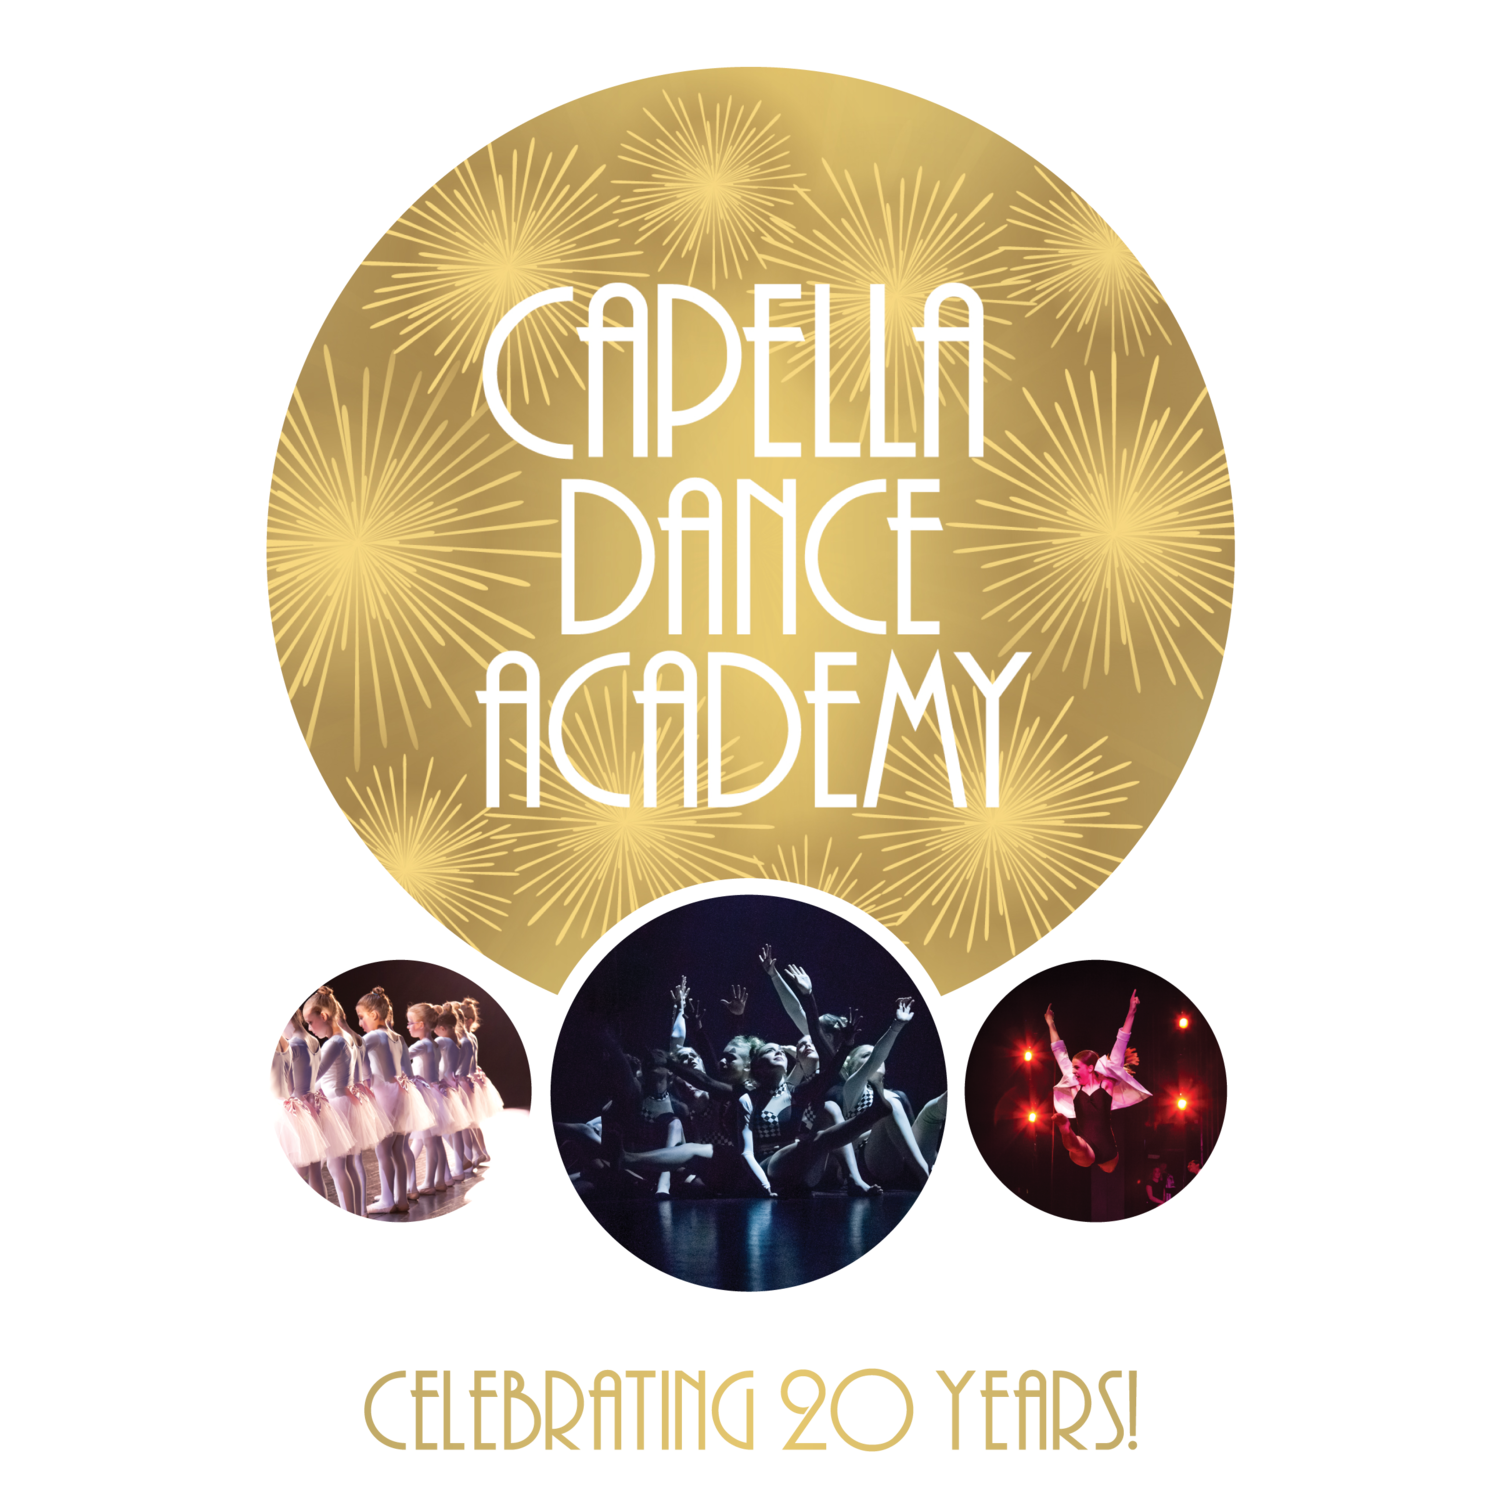 Capella Dance Academy